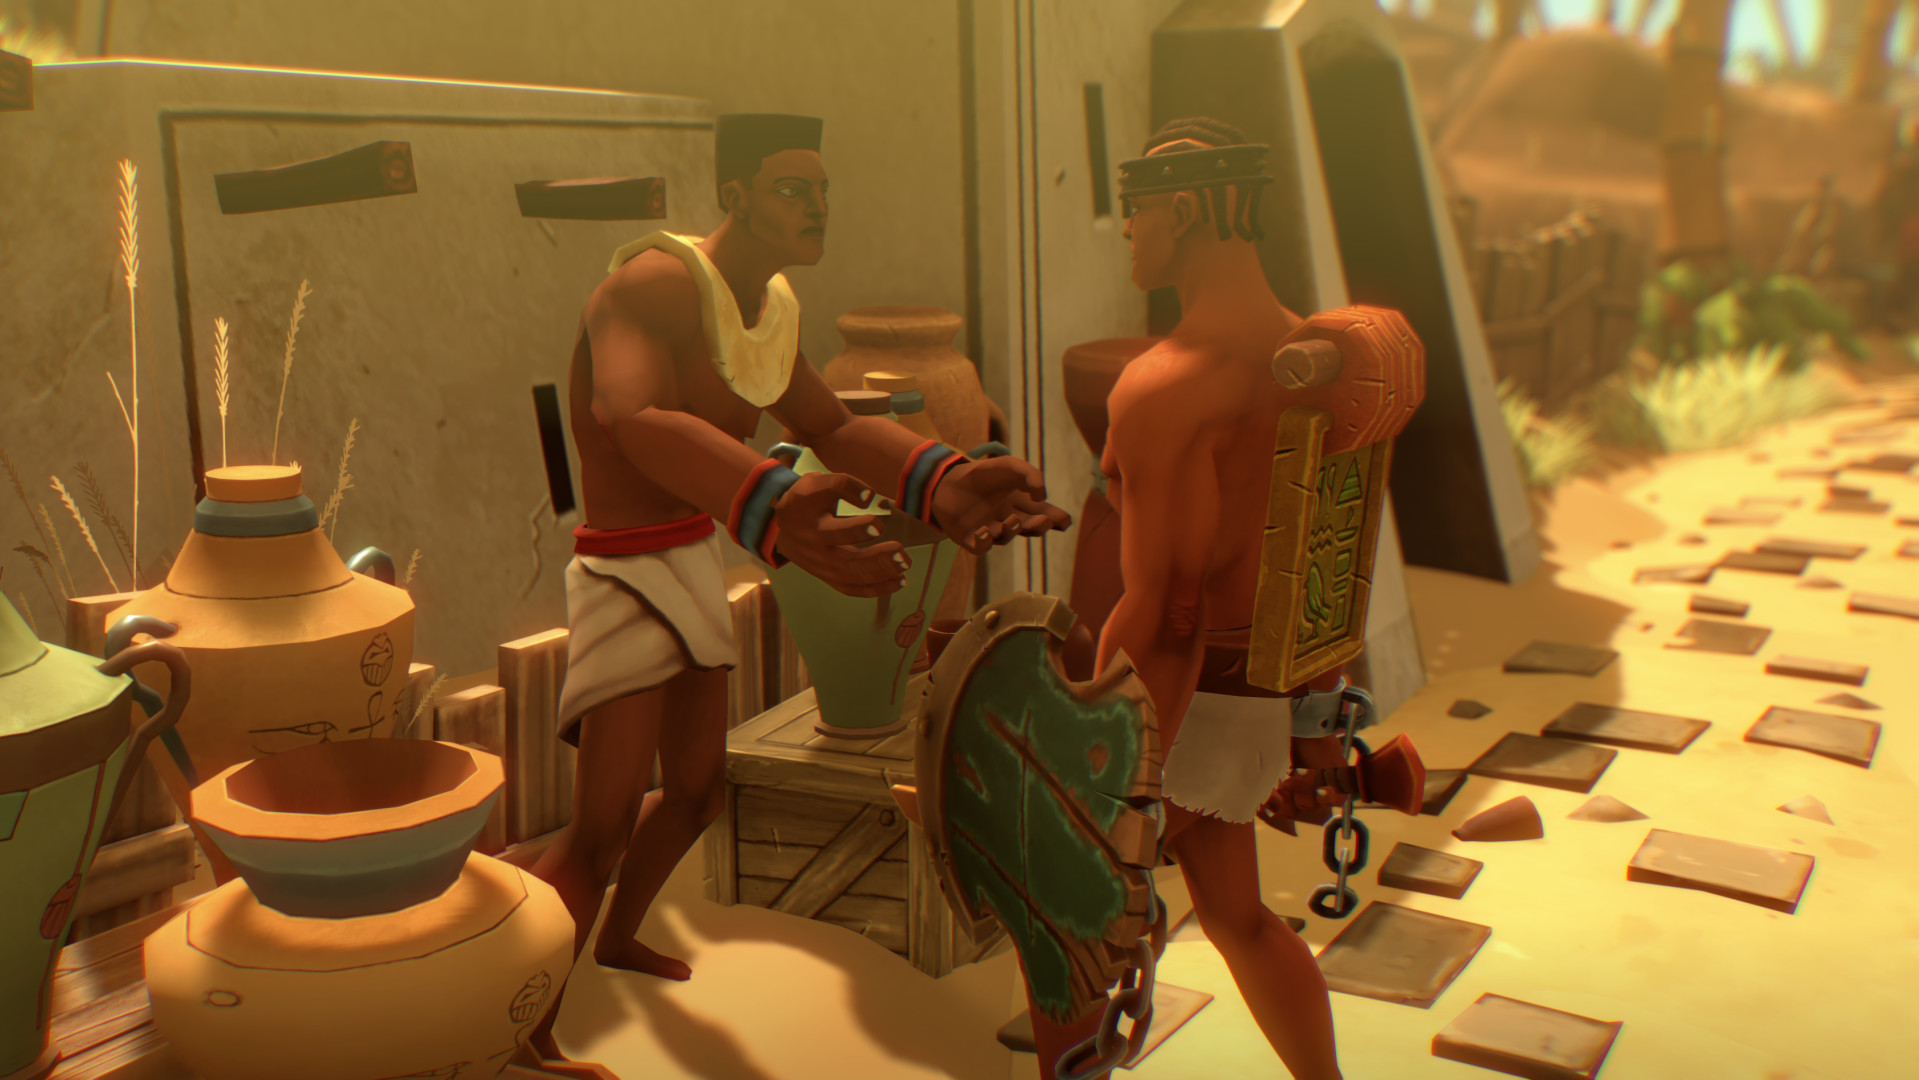 Pharaonic screenshot